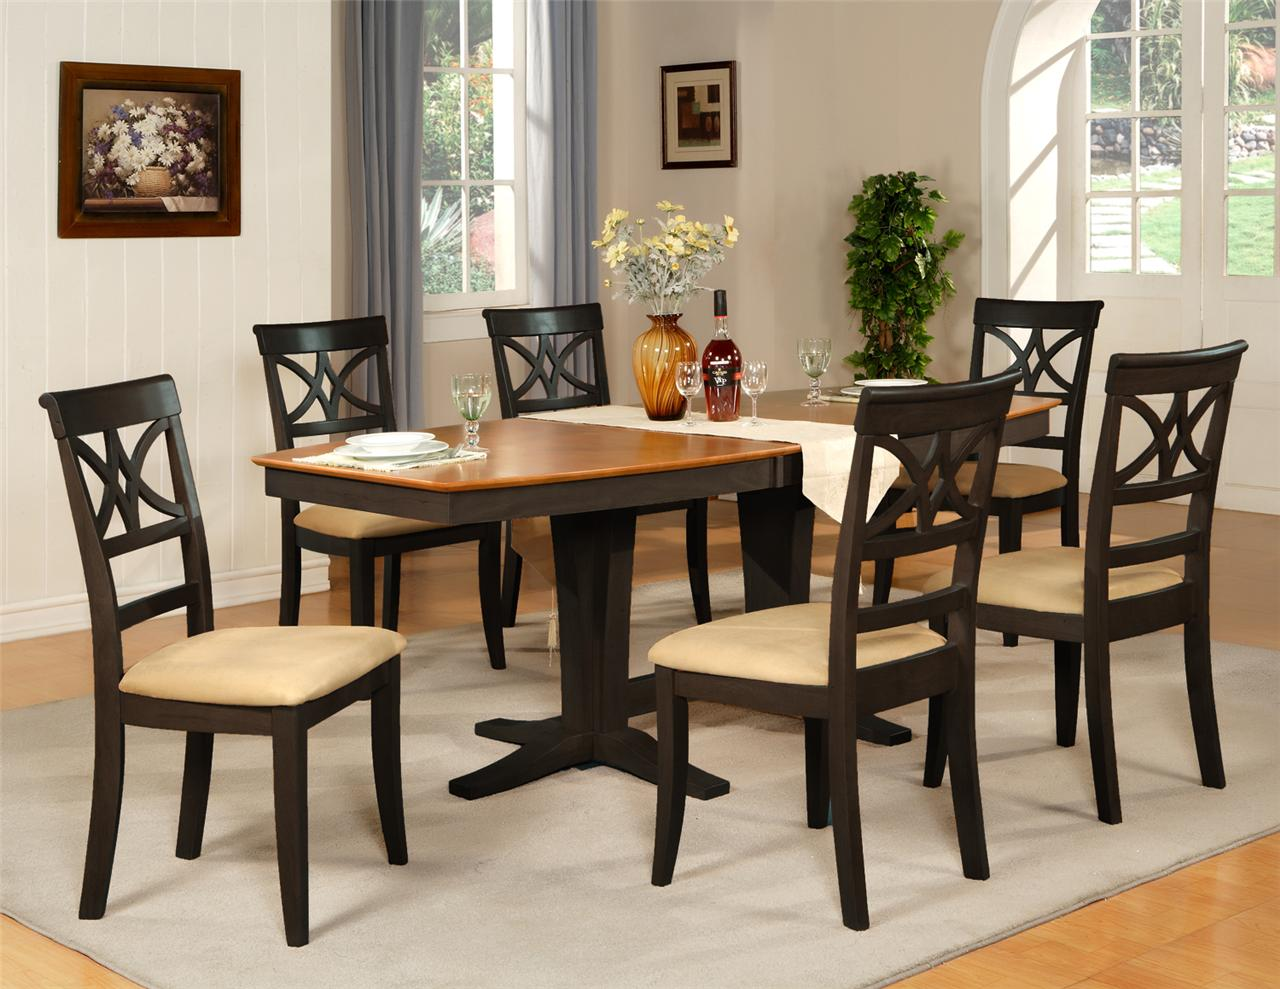 Black and brown Dining Room Tables and Chairs